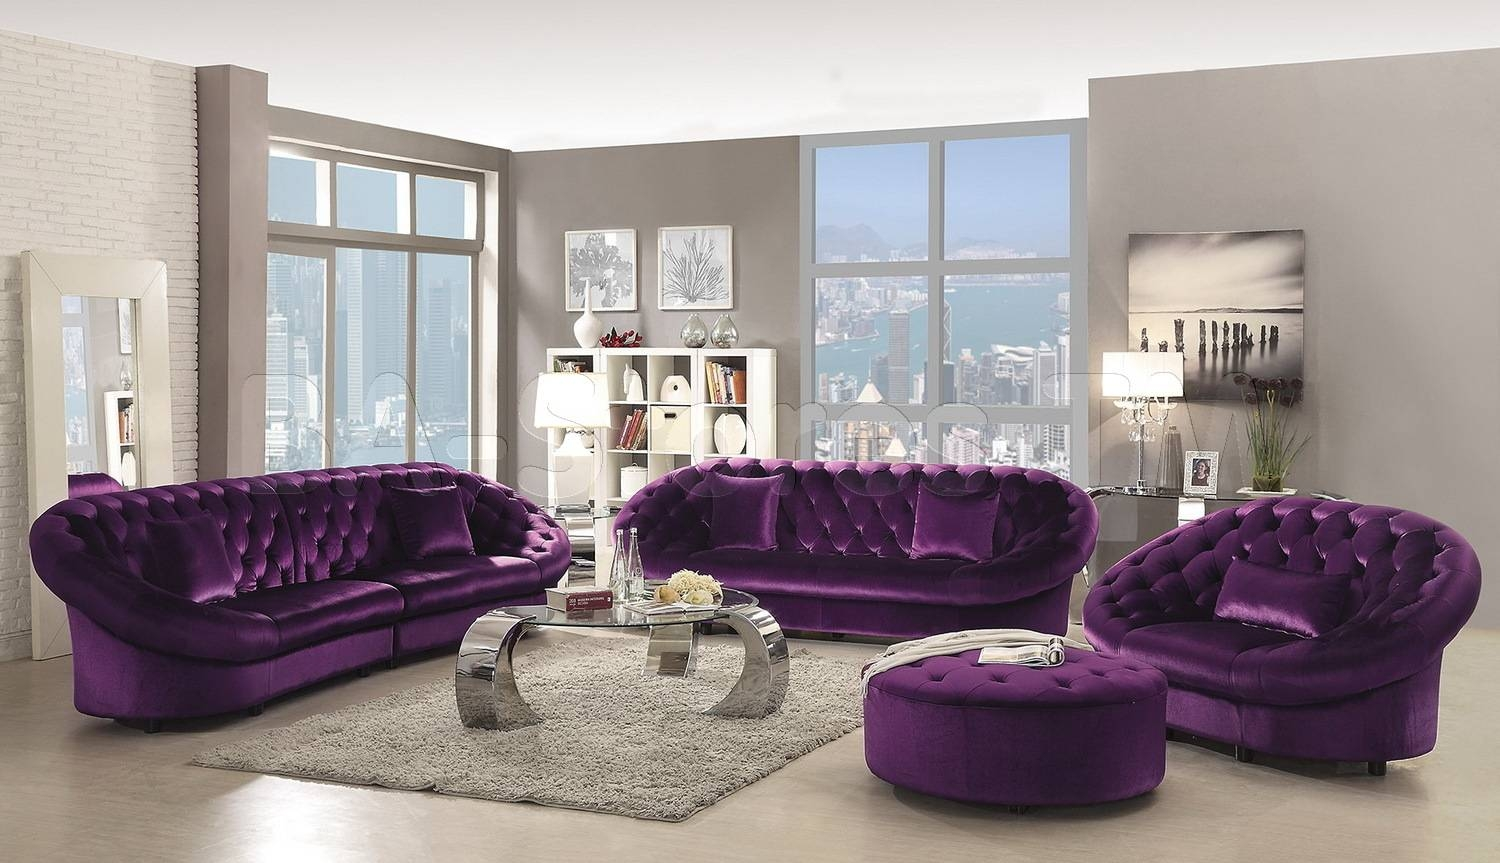 Sofas Center : Excellent Velvet Sectional Sofa With Chaise Home with Velvet Purple Sofas (Image 27 of 30)